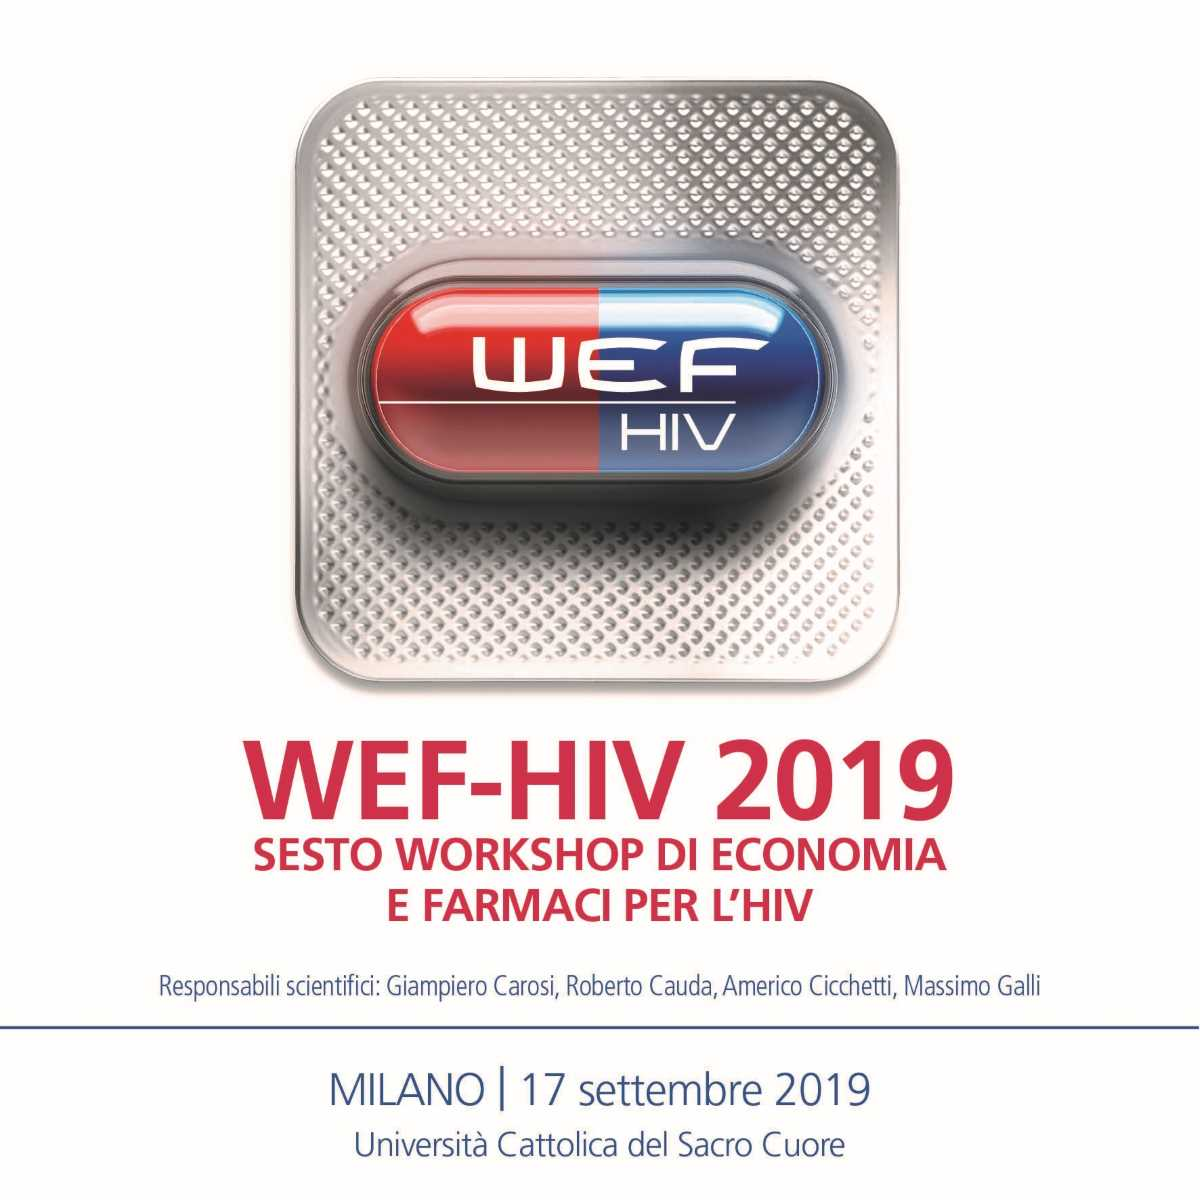 VI  Workshop di Economia e Farmaci per l'HIV - WEF HIV 2019